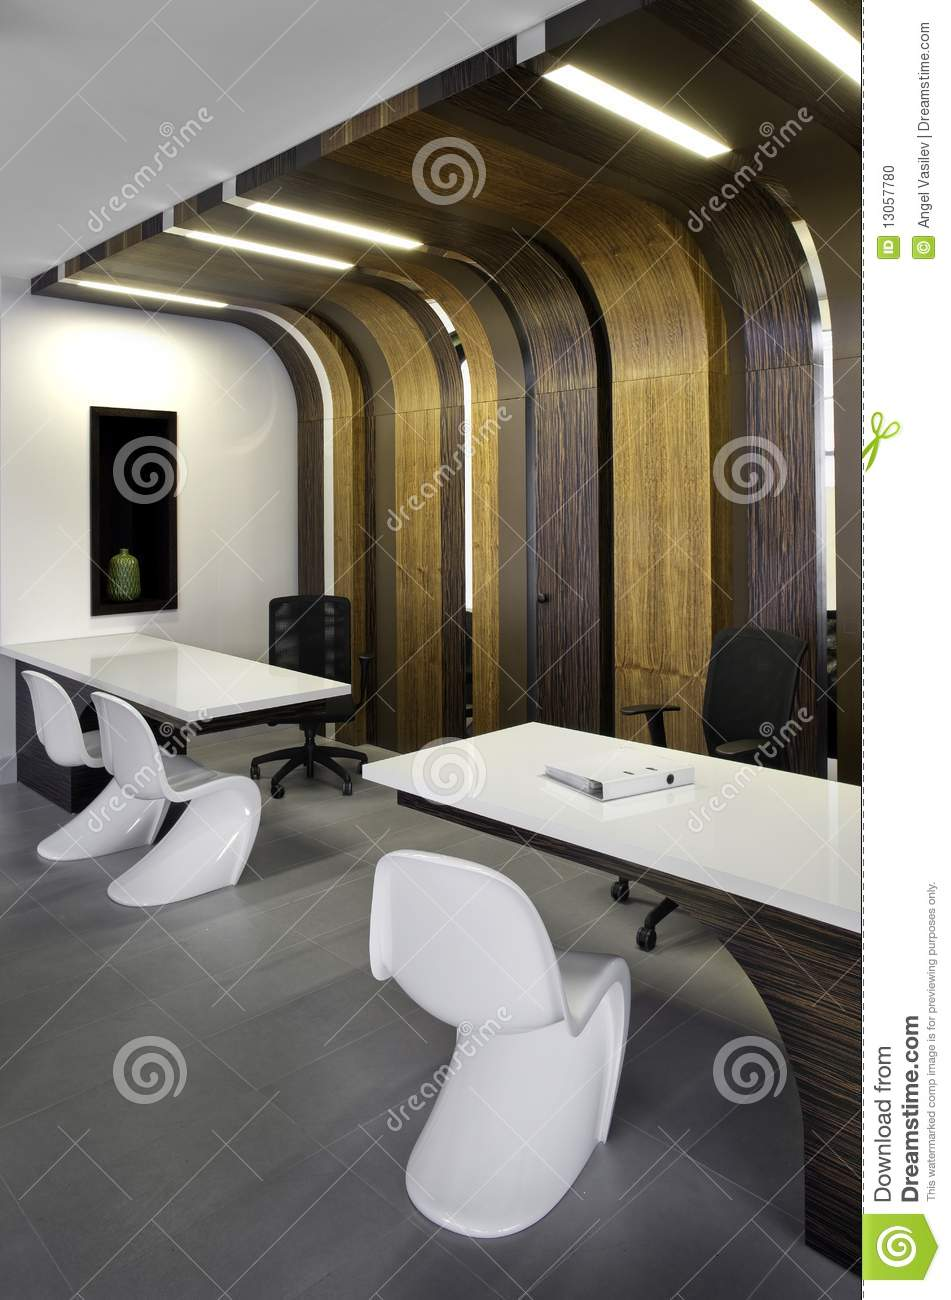 Office Furniture 4 U